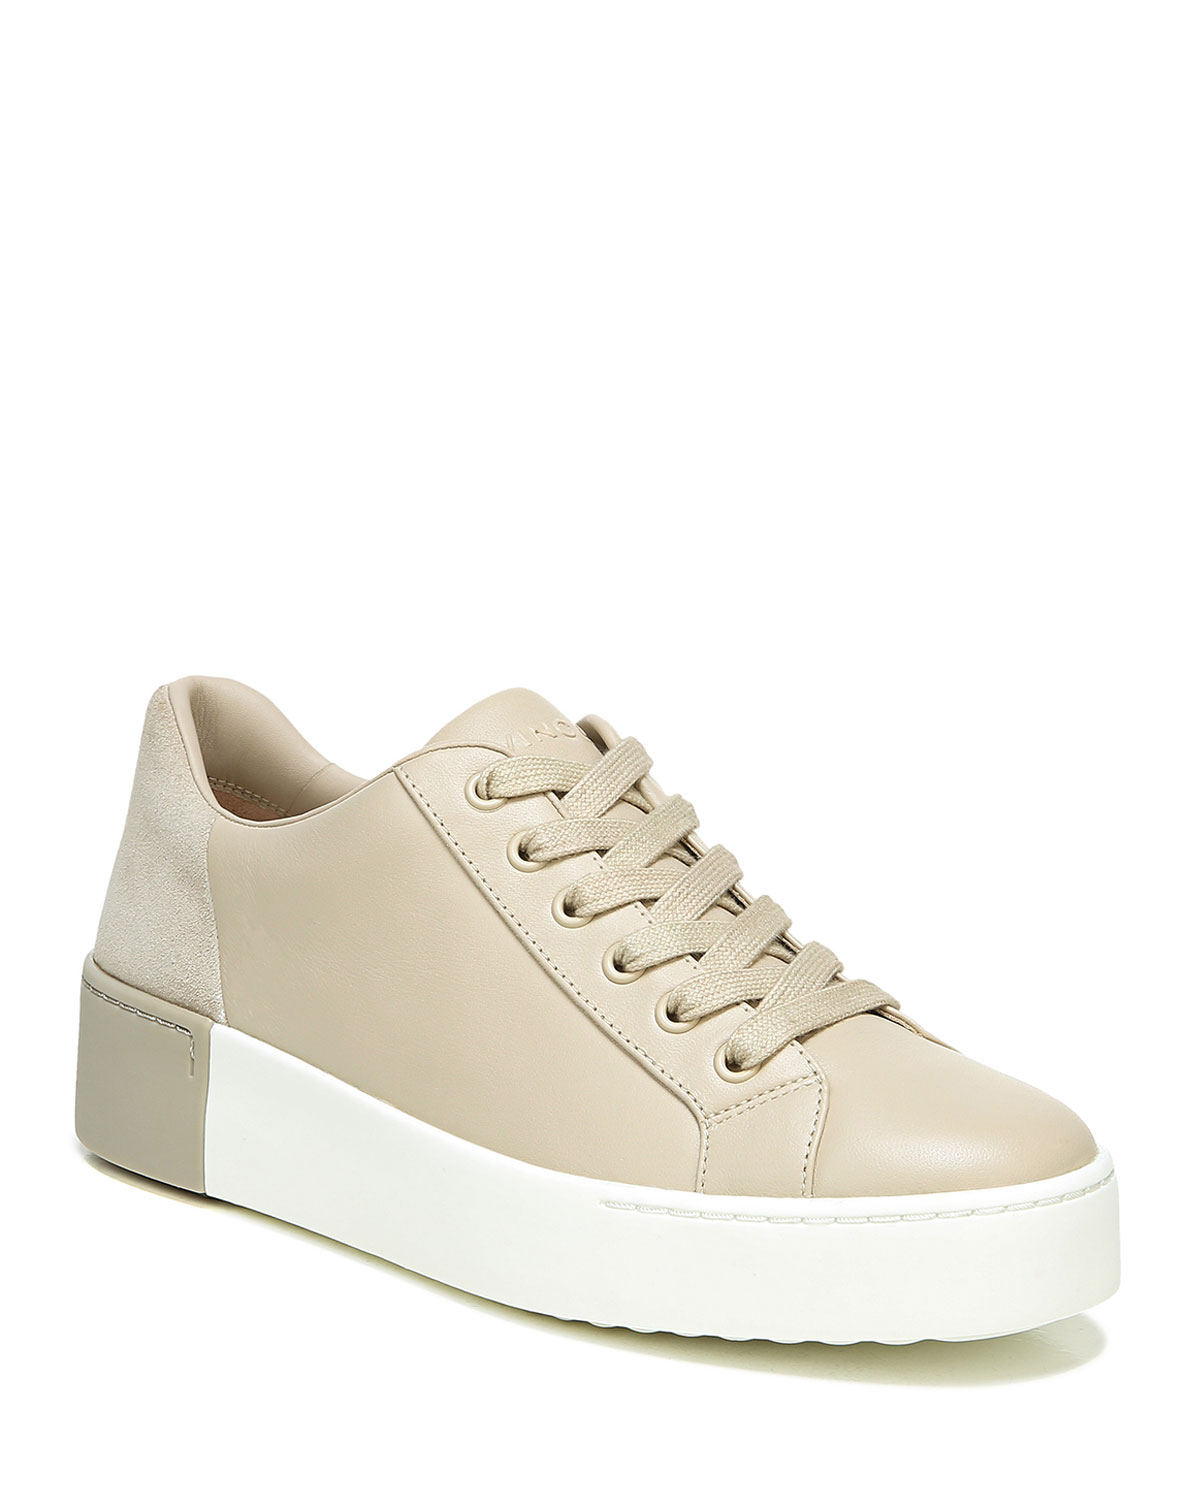 Bensley Mixed Leather Low-Top Sneakers